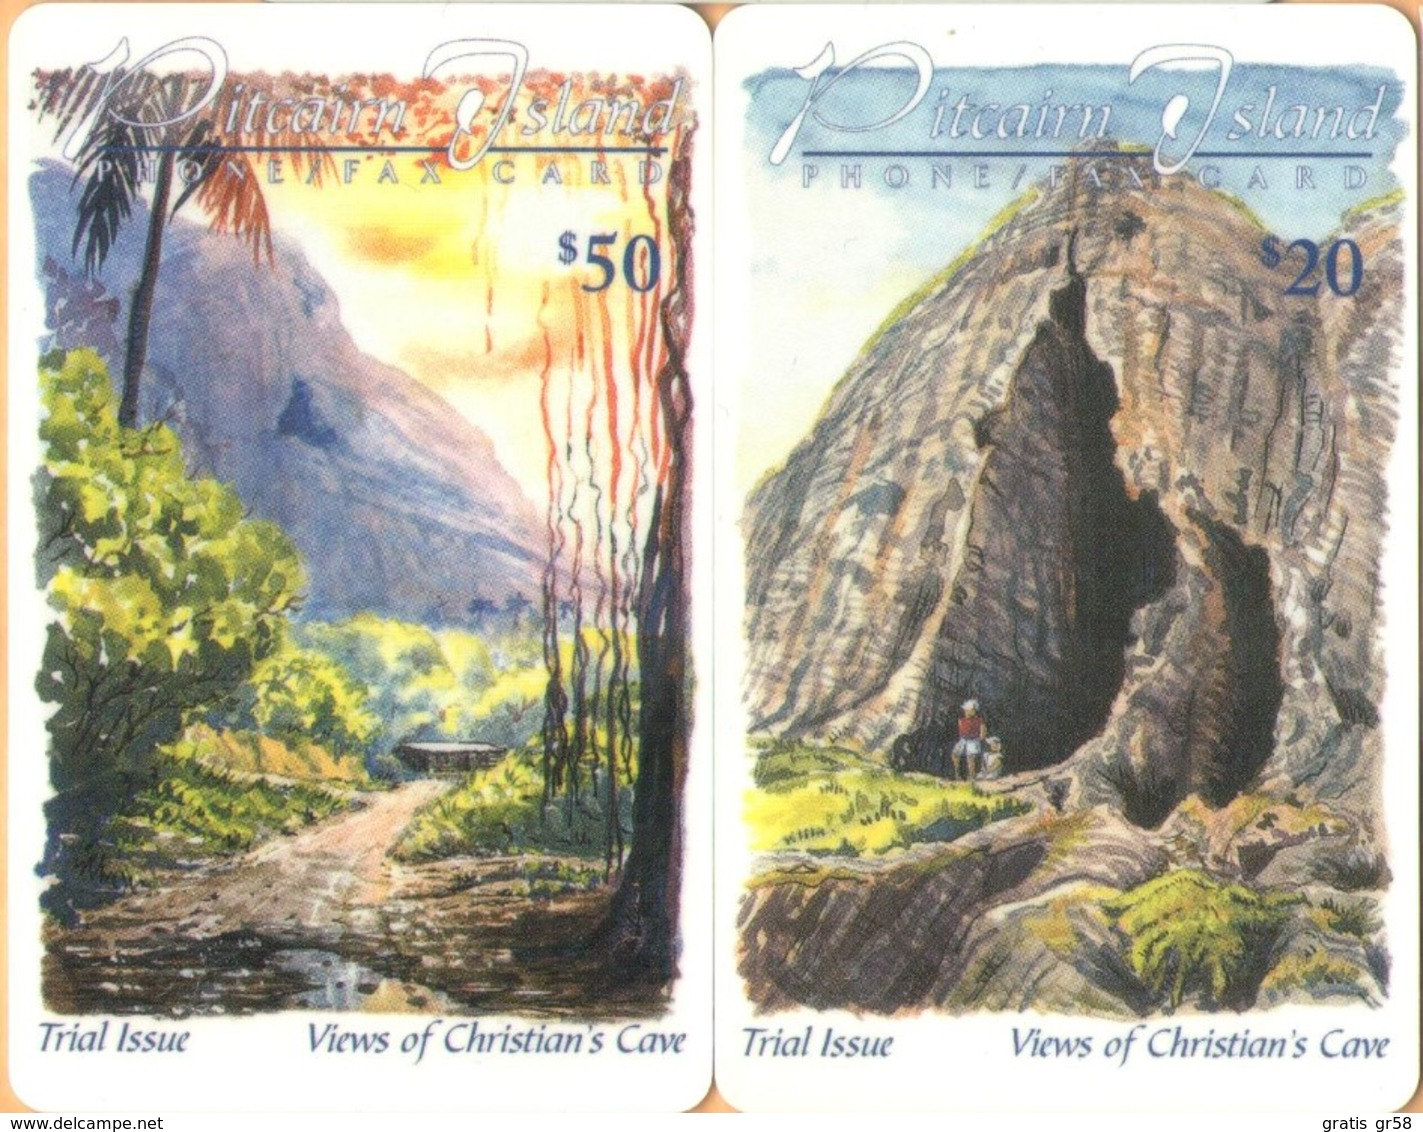 Pitcairn Isl. - PIT-0001/2/3/4, Trial Issue, Magnetic, Set Of (4) Four, 5/10/20/50 $, 1000ex, 1998, Mint - Pitcairn Islands